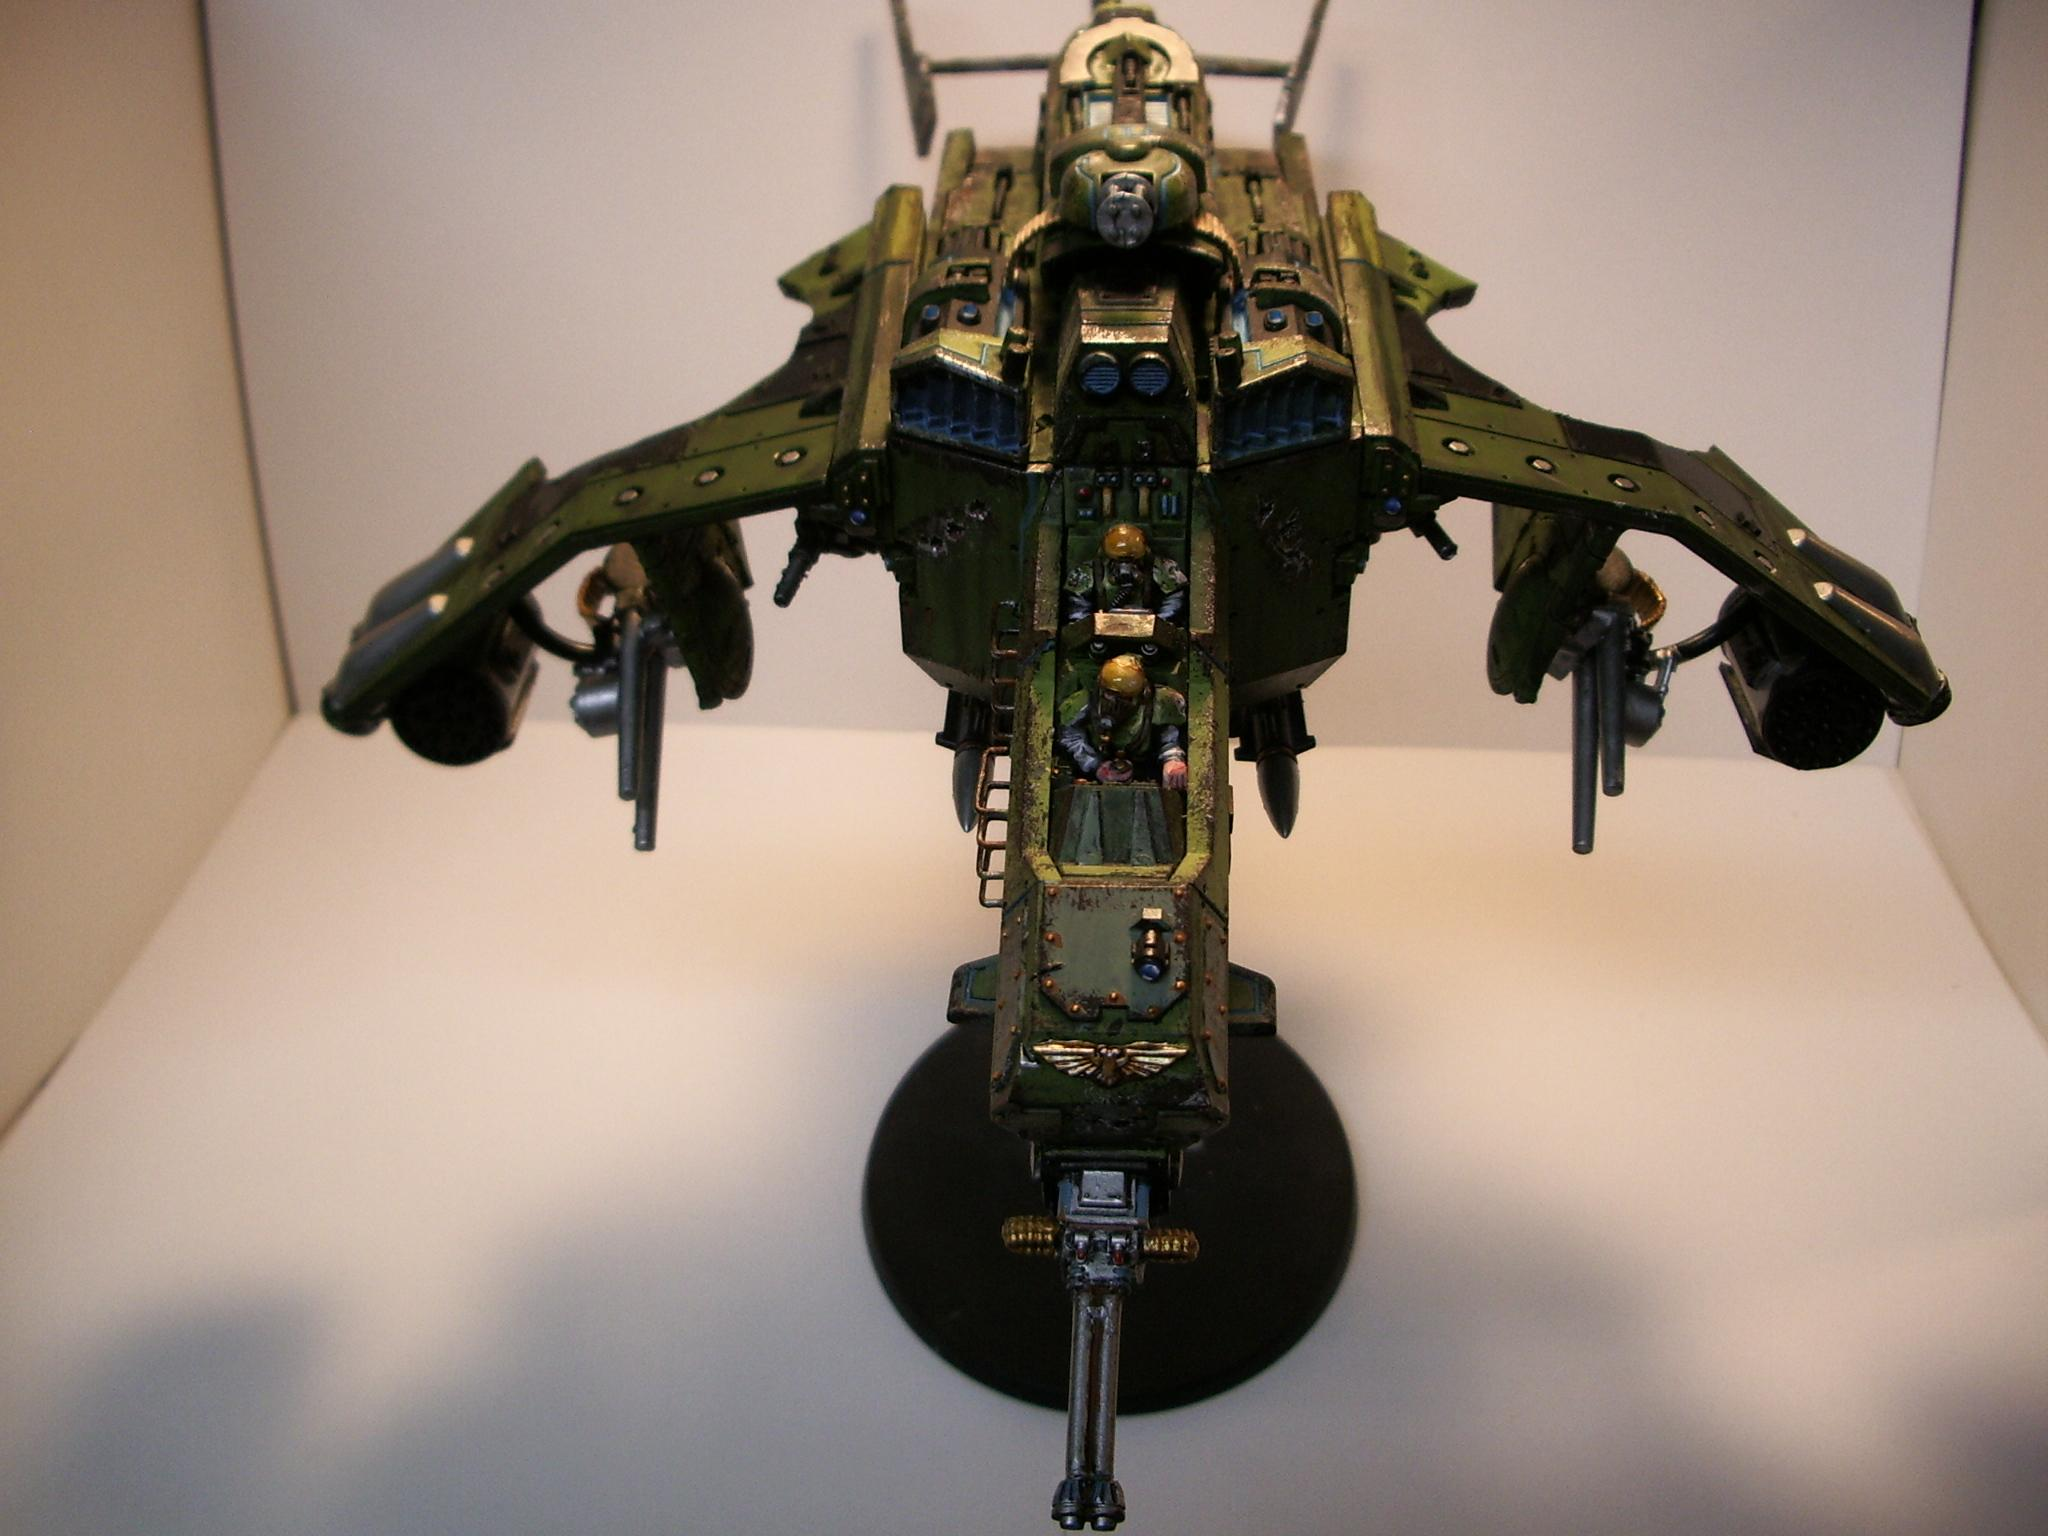 Aircraft, Halo, Imperial Guard, Sparrowhawk, Tau, Unsc, Valkyrie